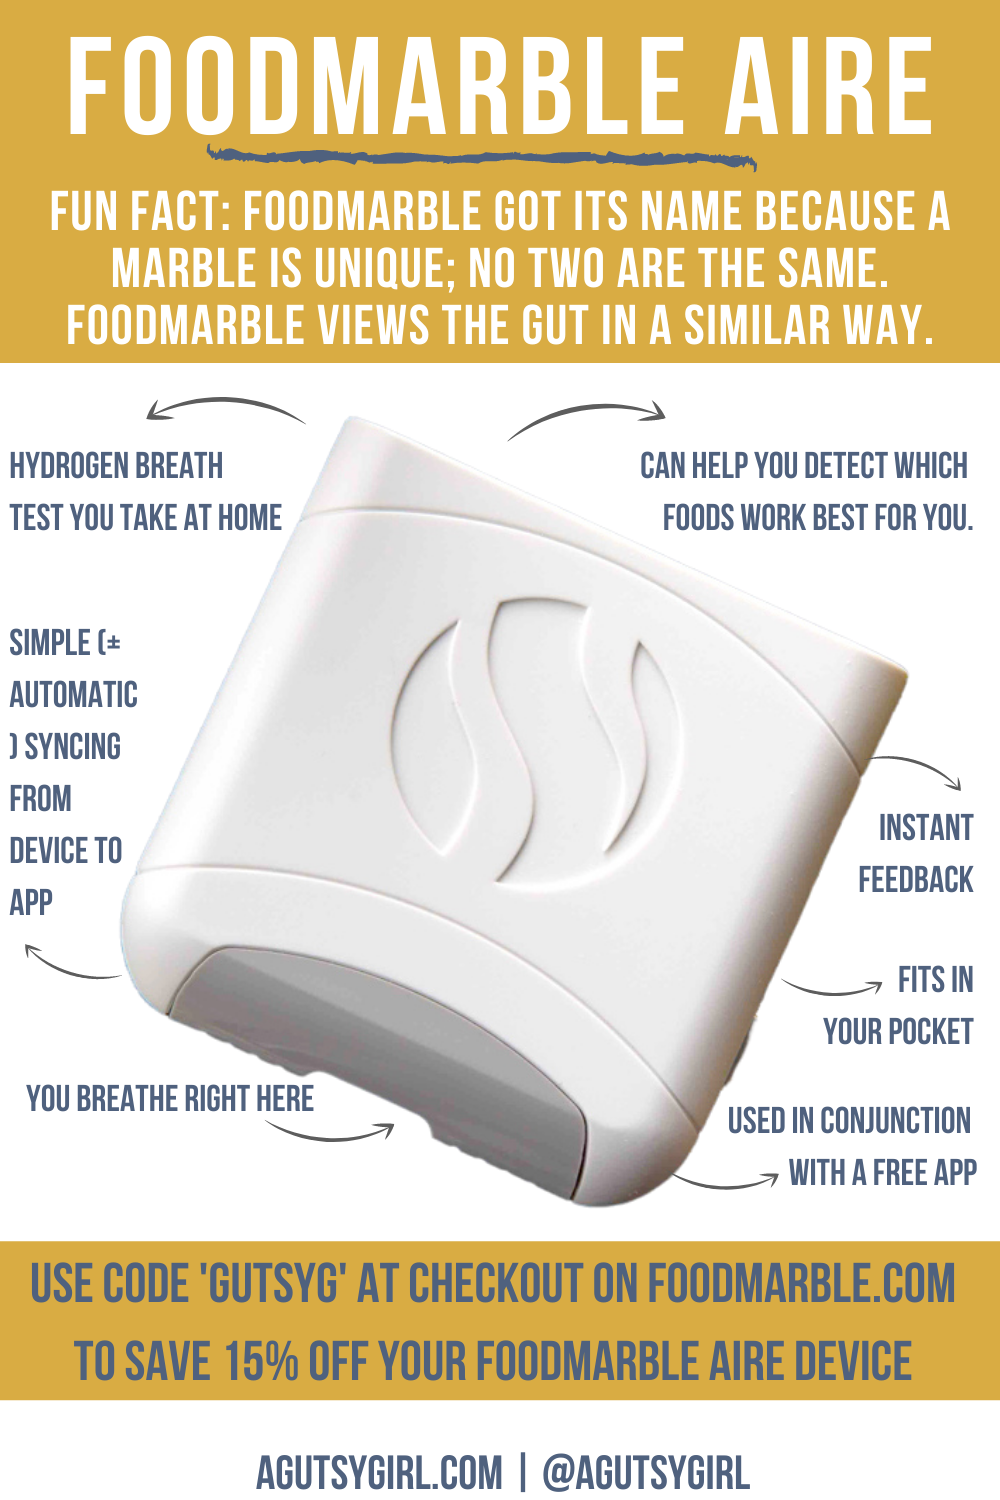 FoodMarble AIRE Hydrogen Breath Test at Home agutsygirl.com #foodmarble #healthtech #hydrogen #SIBO